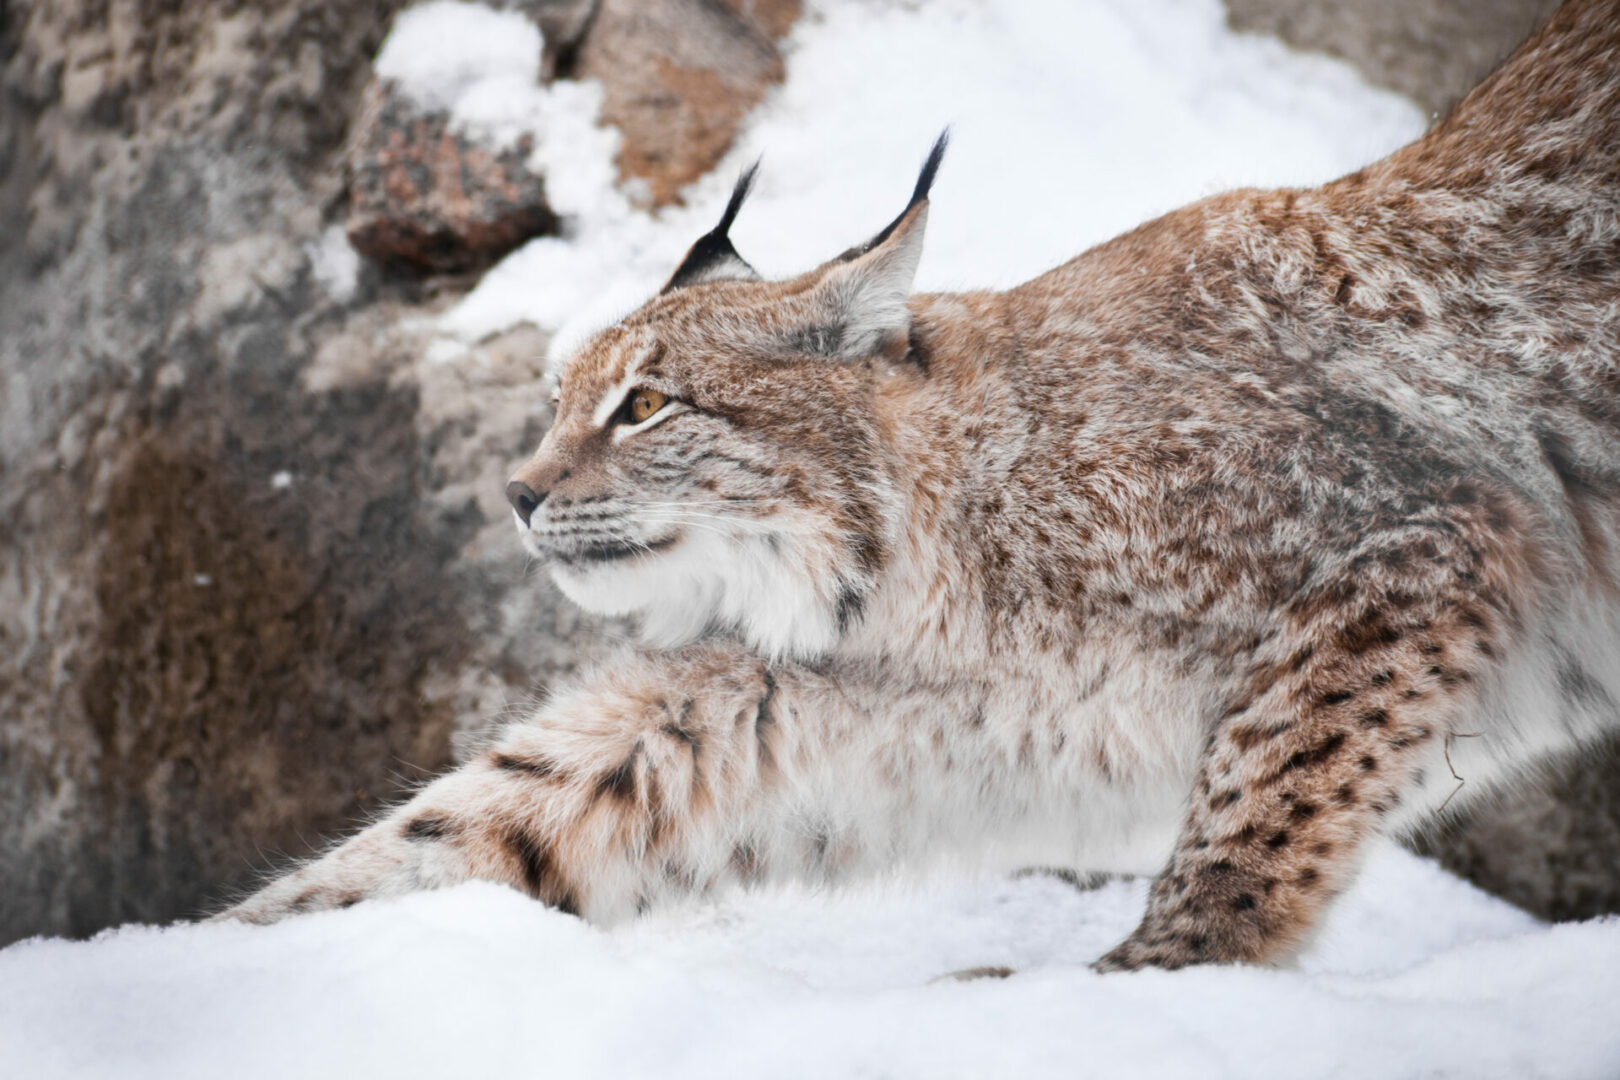 facts about the Canada Lynx